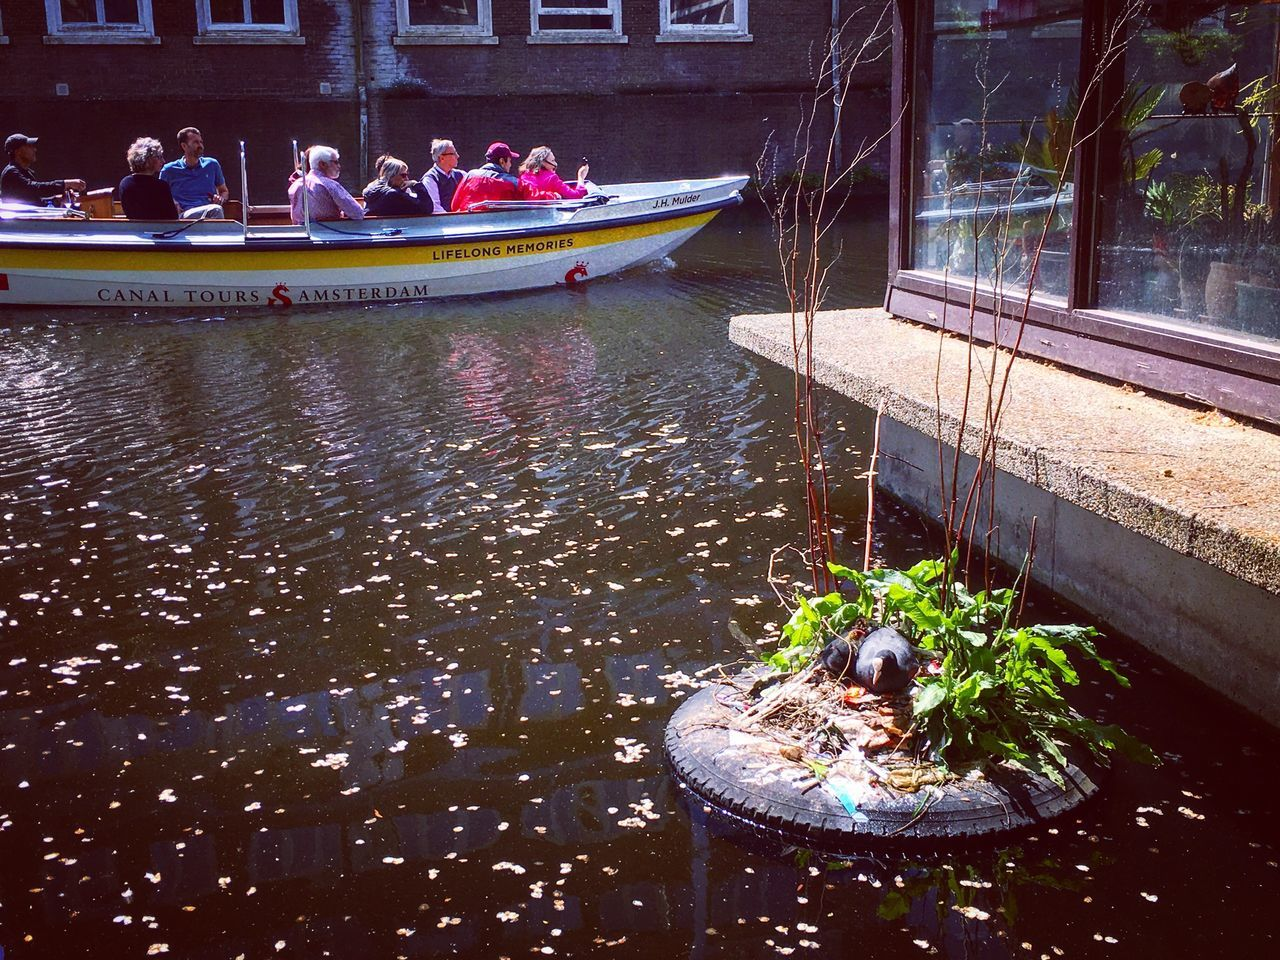 A coot with her ducklings in Amsterdam. Water Nautical Vessel Outdoors River Transportation Day Waterfront Real People Moored Nature Building Exterior Architecture Tree Houseboat Prinsengracht Canal Dutch Canals Amsterdam Canal Coot Ducklings